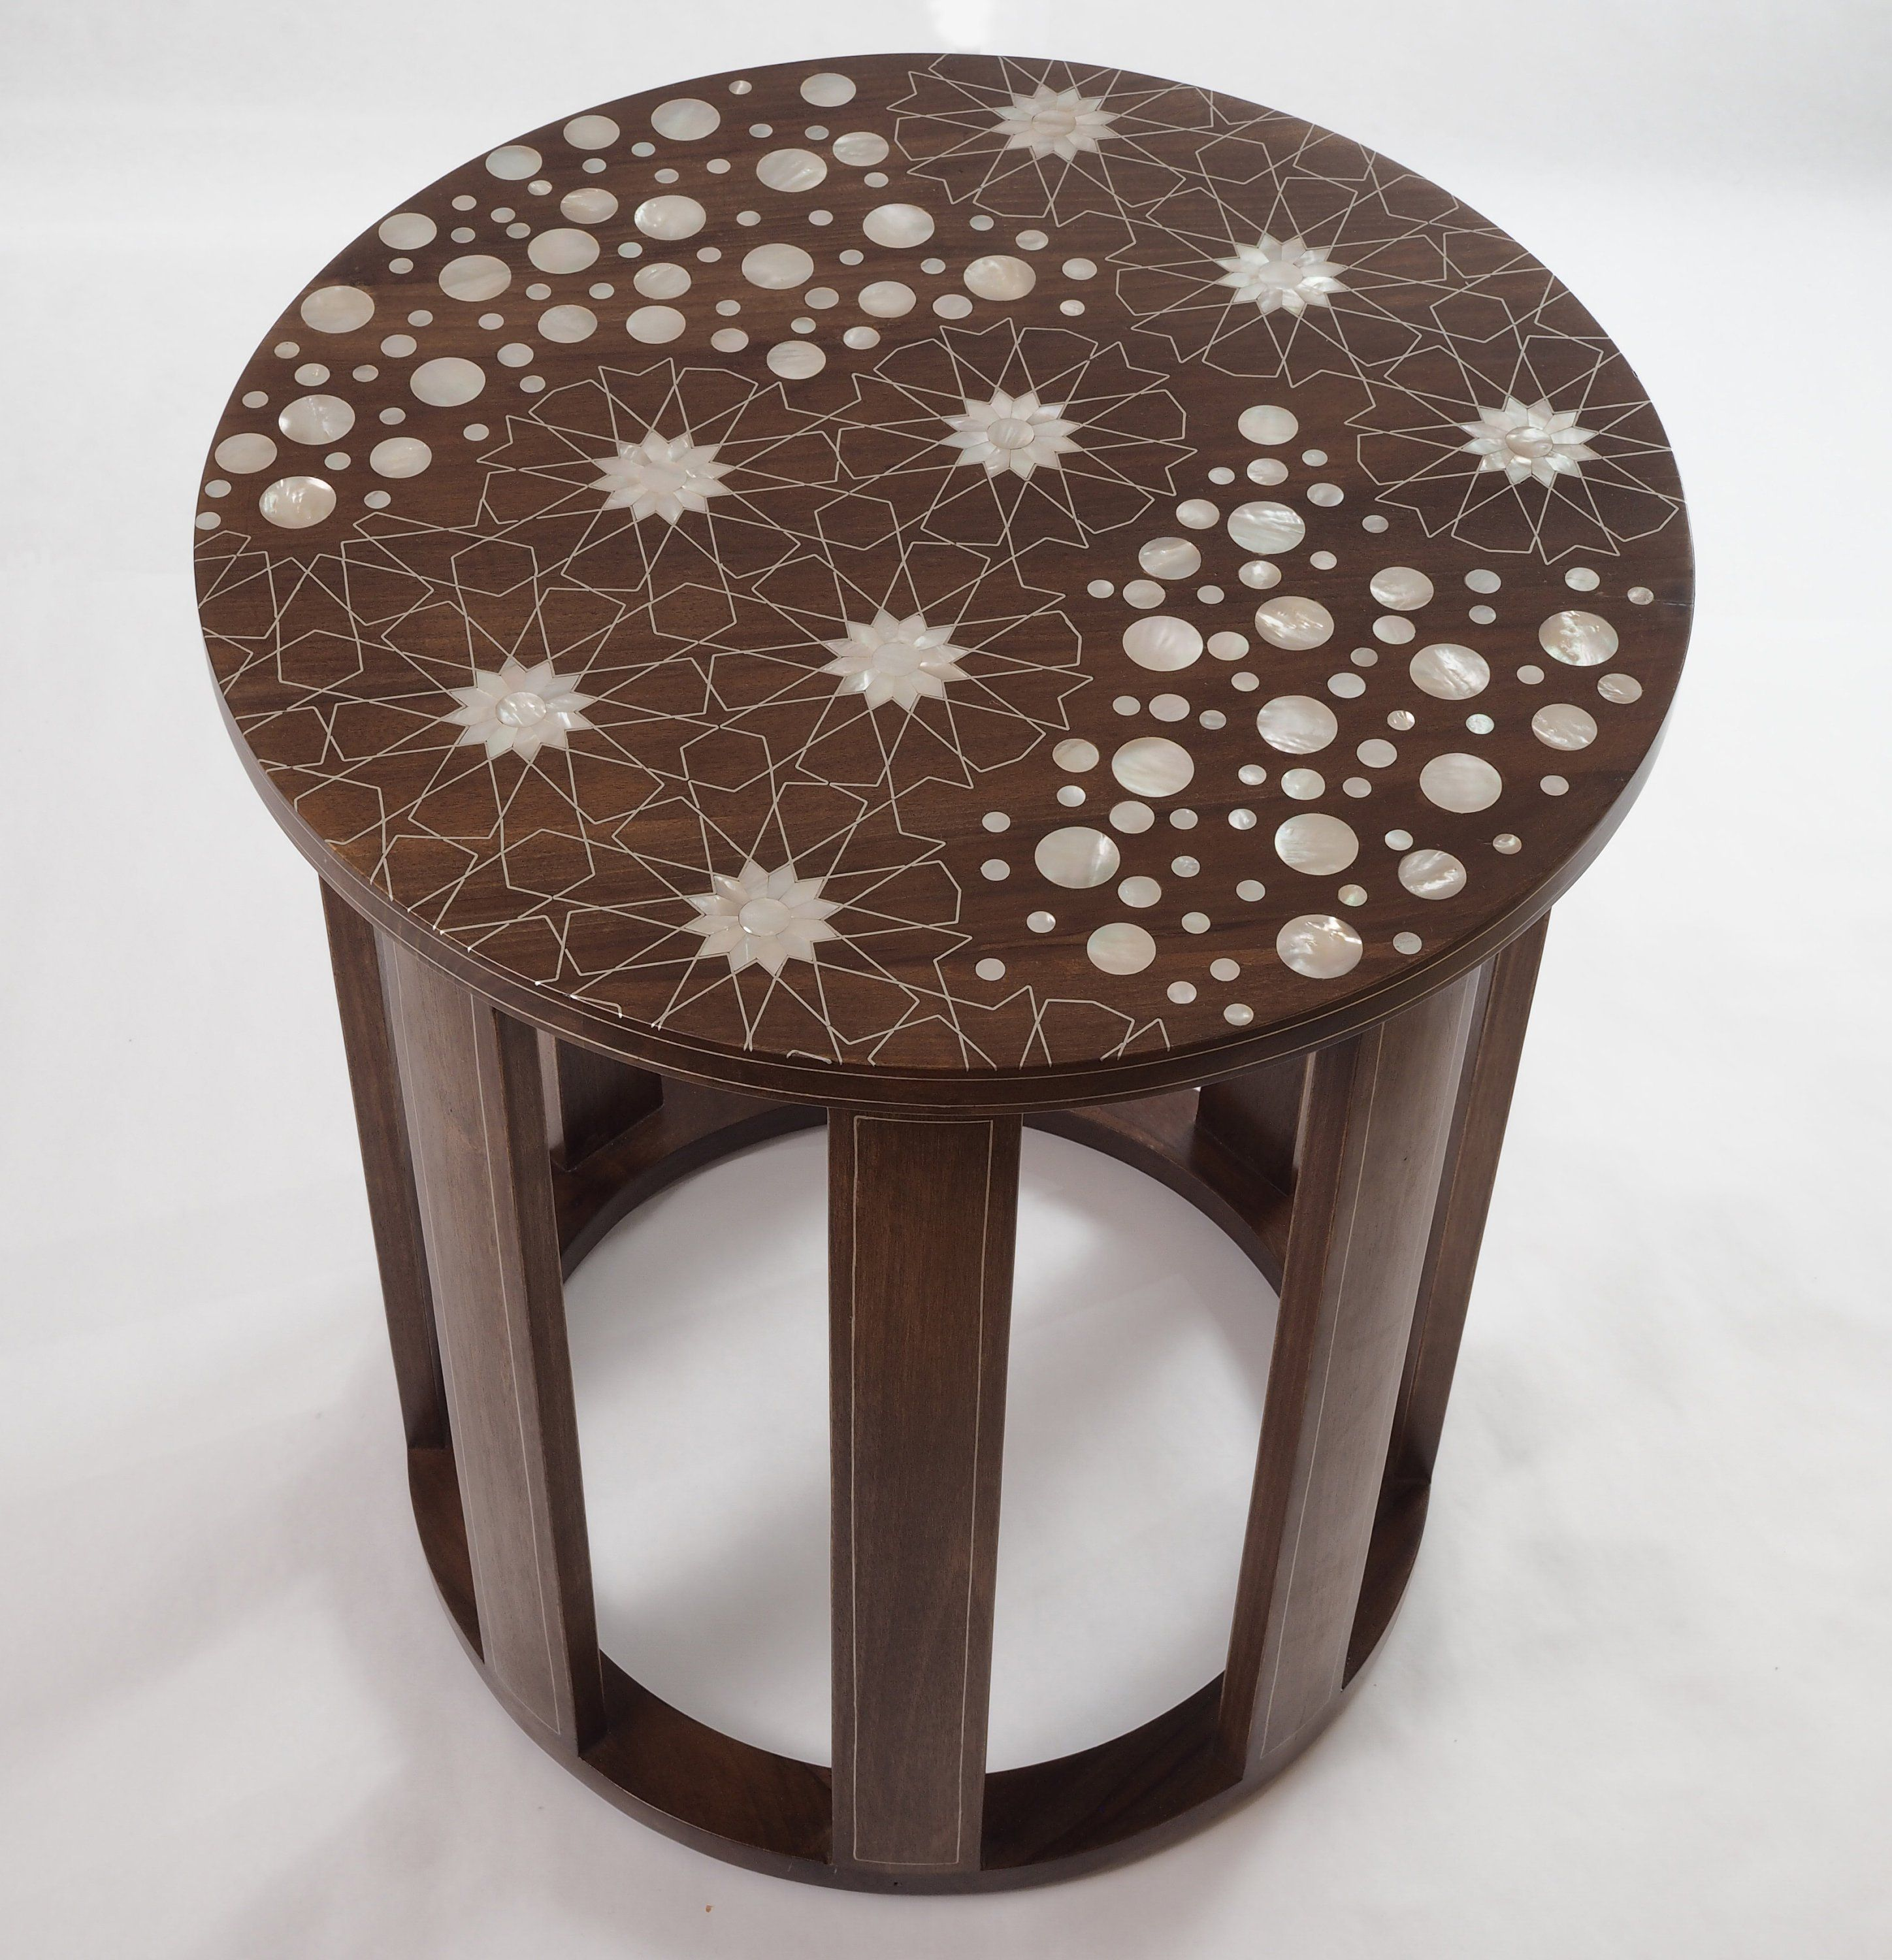 Round Coffee Table Wooden Table Mother Of Pearl Inlaid Syrian Etsy Round Ottoman Coffee Table Ottoman Coffee Table Round Metal Coffee Table [ 3000 x 2896 Pixel ]